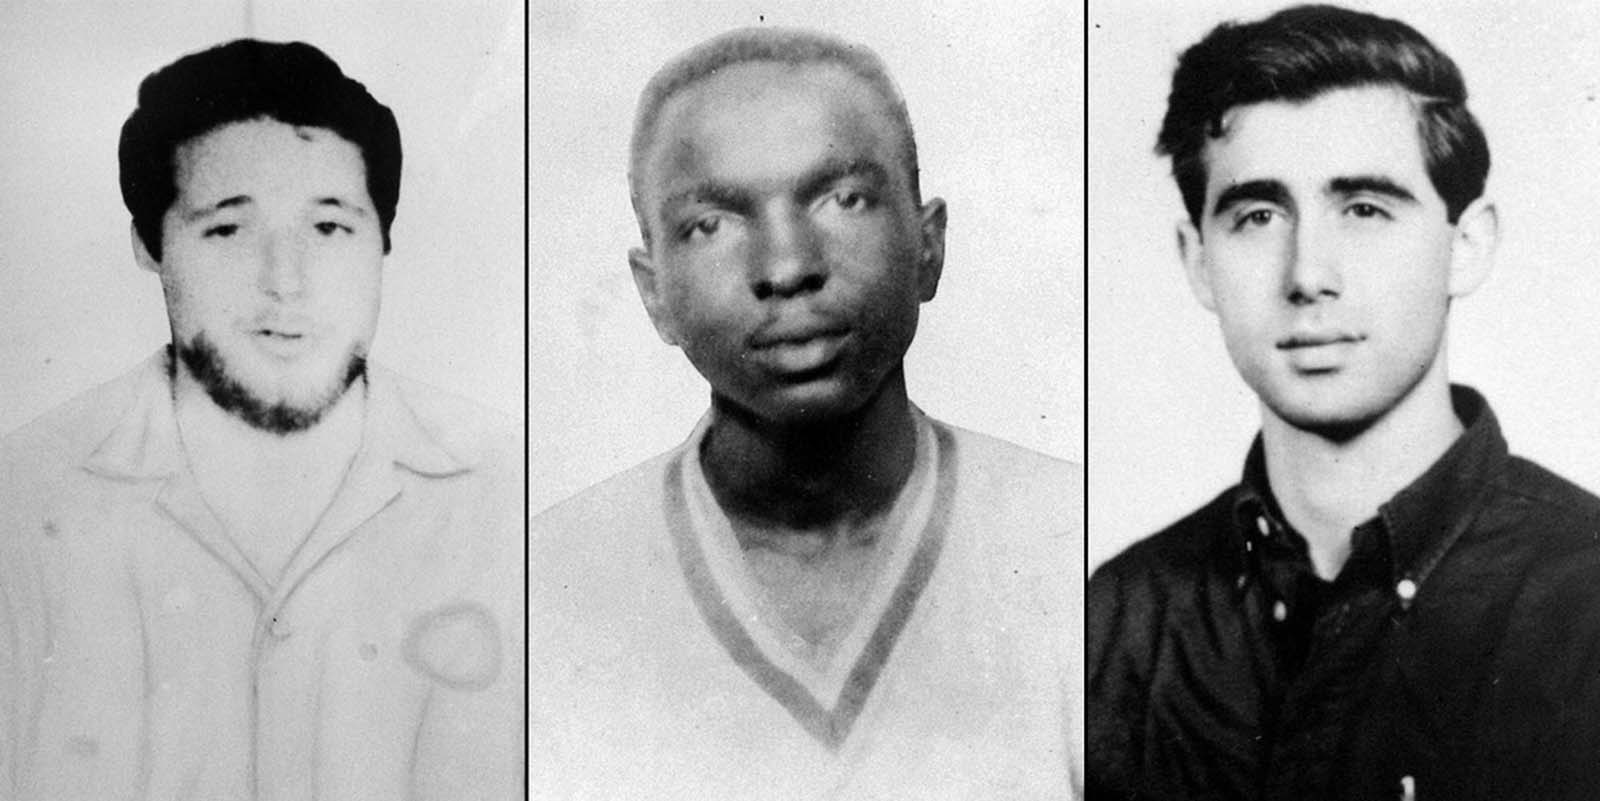 On June 29, 1964, the FBI began distributing these pictures of three missing civil rights workers, from left, Michael Schwerner, 24, of New York, James Chaney, 21, from Mississippi, and Andrew Goodman, 20, of New York, who disappeared near Philadelphia, Mississippi, on June 21, 1964. The three civil rights workers, part of the